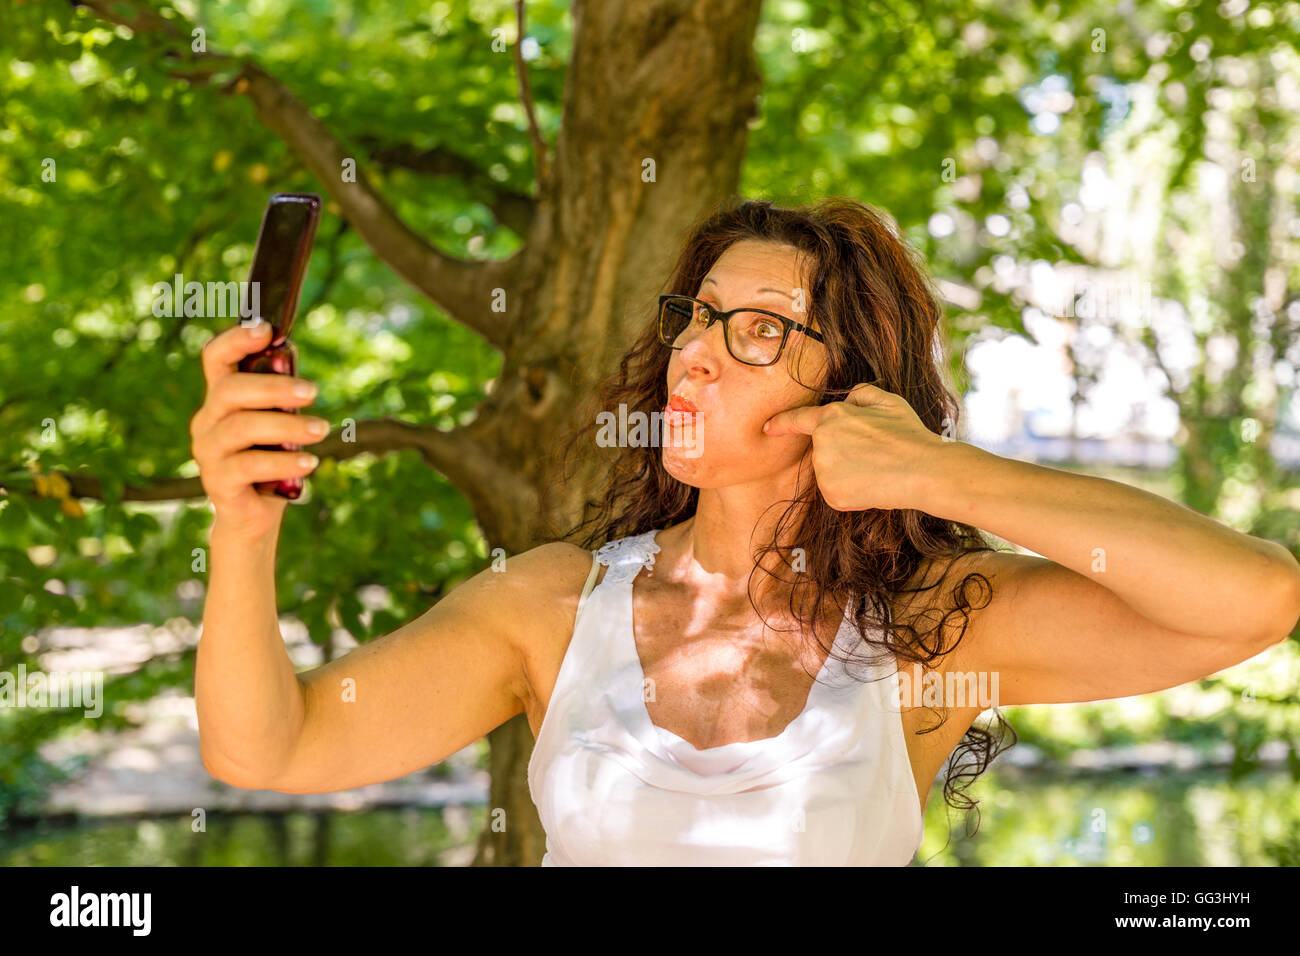 mature woman takes a selfie with a phone for the elderly grimacing - Stock Image